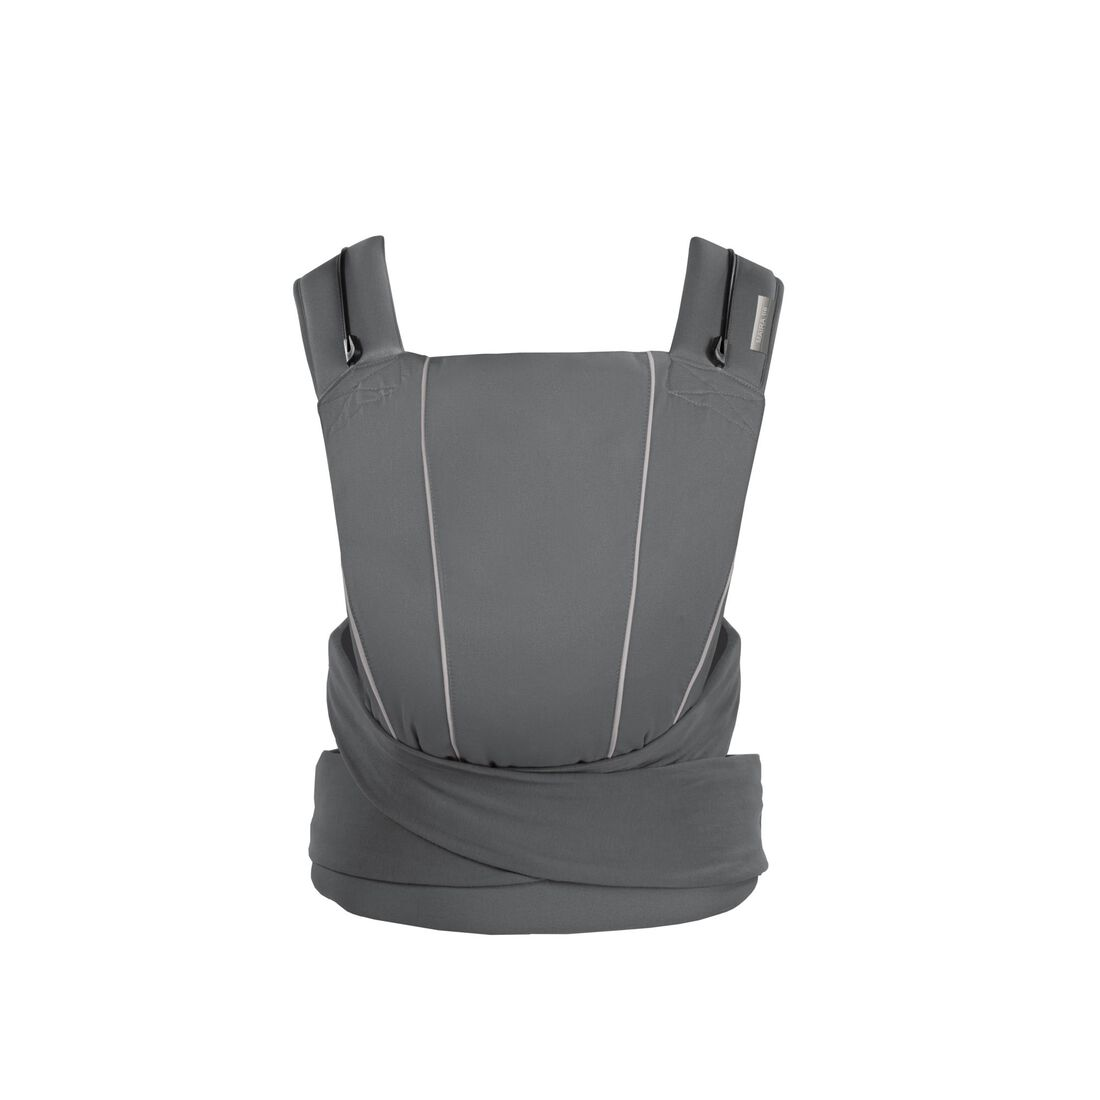 CYBEX Maira Tie - Manhattan Grey in Manhattan Grey large Bild 1